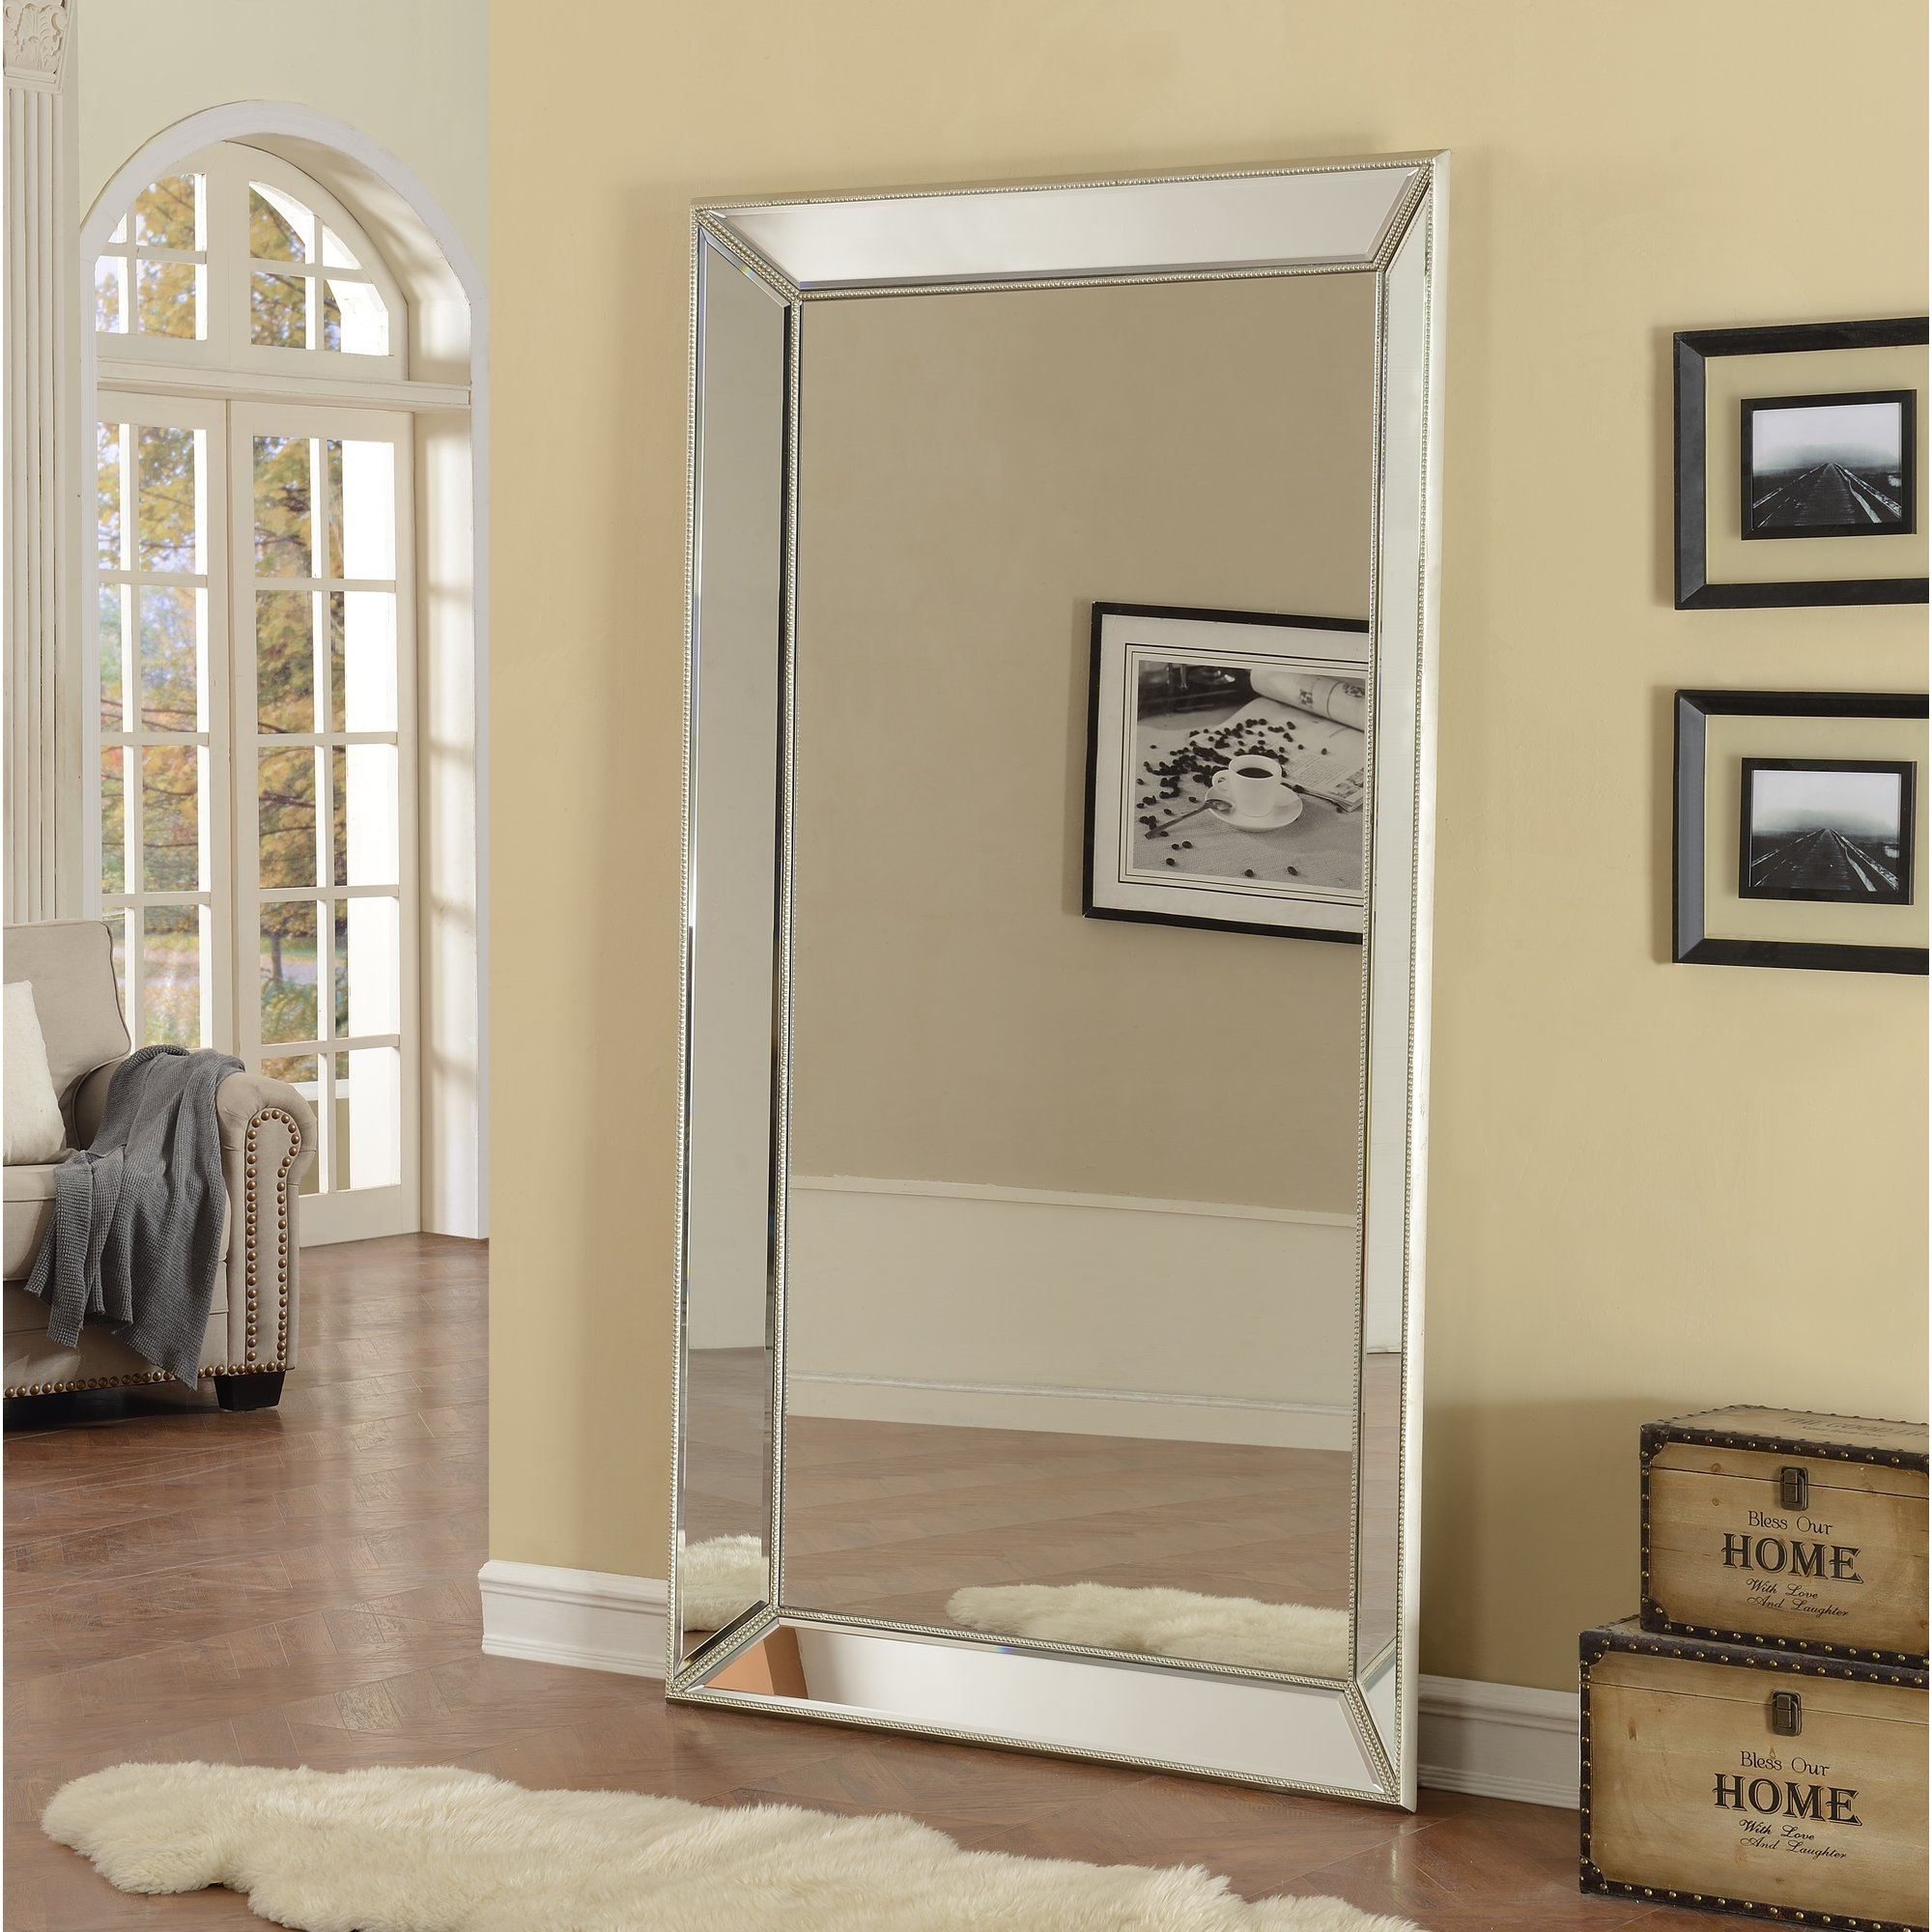 Floor Mirrors Youll Love Wayfair Regarding French Floor Mirrors (Image 5 of 15)